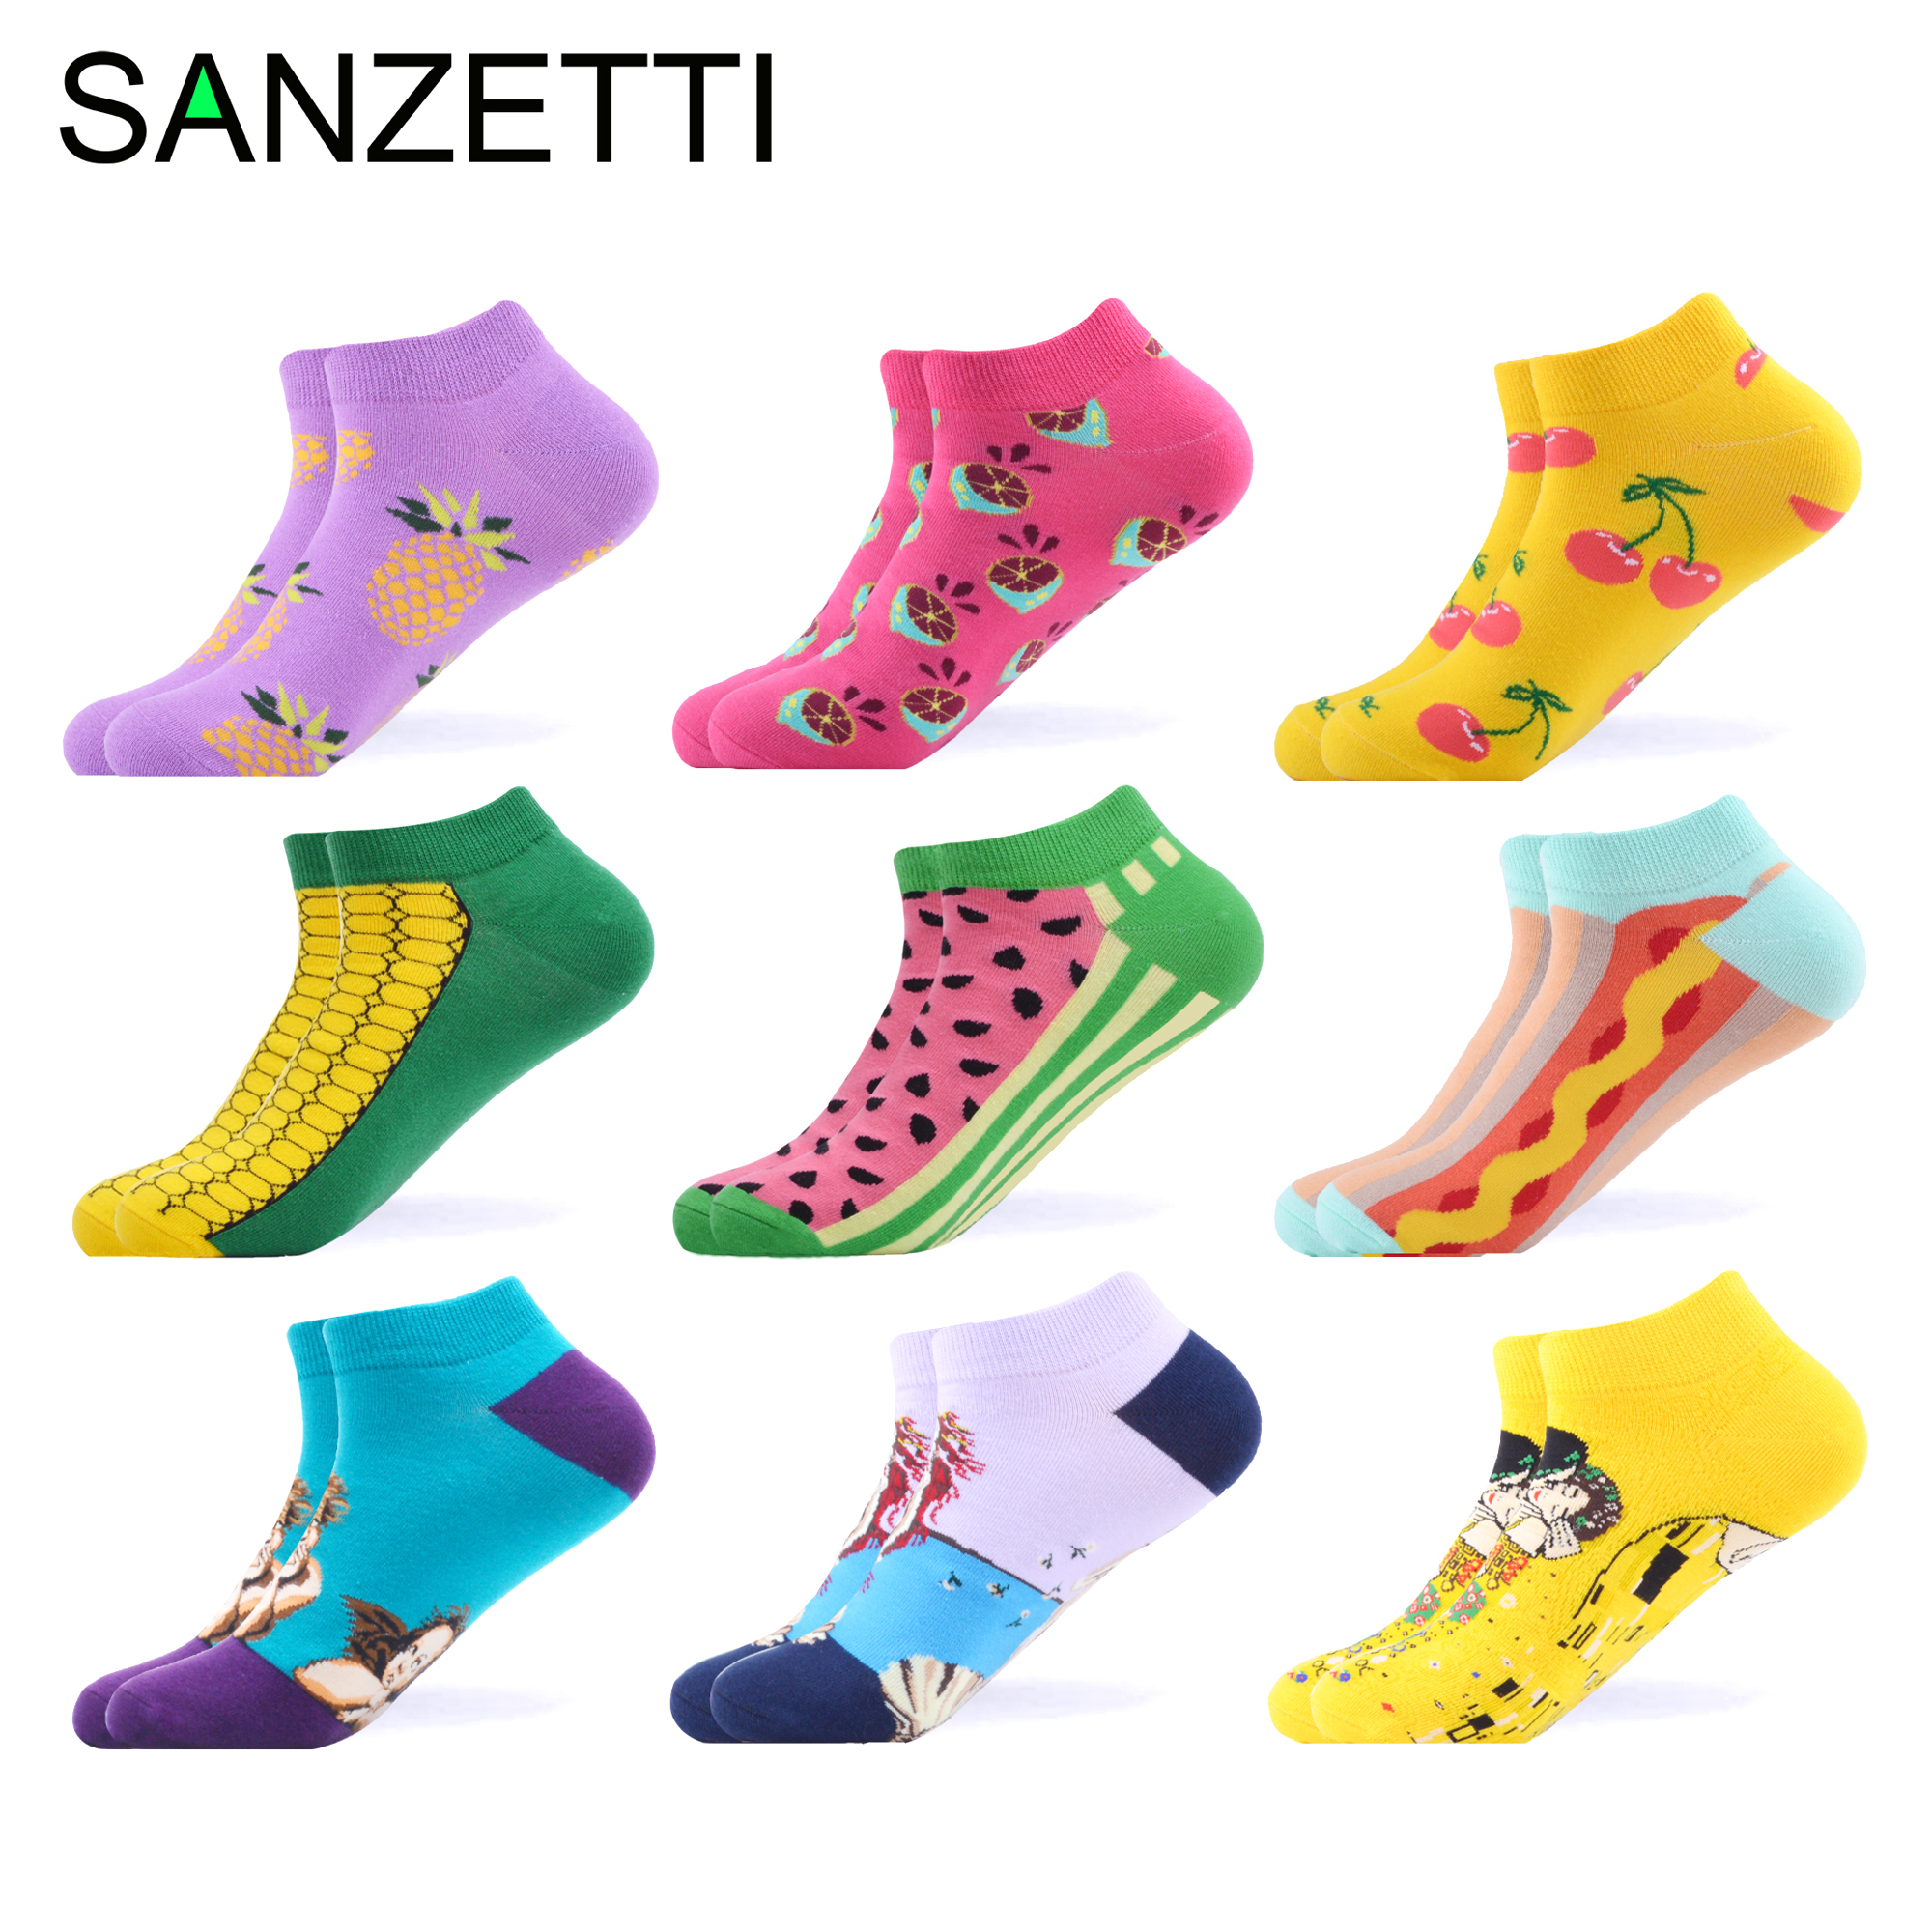 SANZETTI 9 Pairs/Lot Summer Women Casual Ankle Socks Novelty Colorful Ladies Combed Cotton Short Socks Happy Harajuku Boat Socks